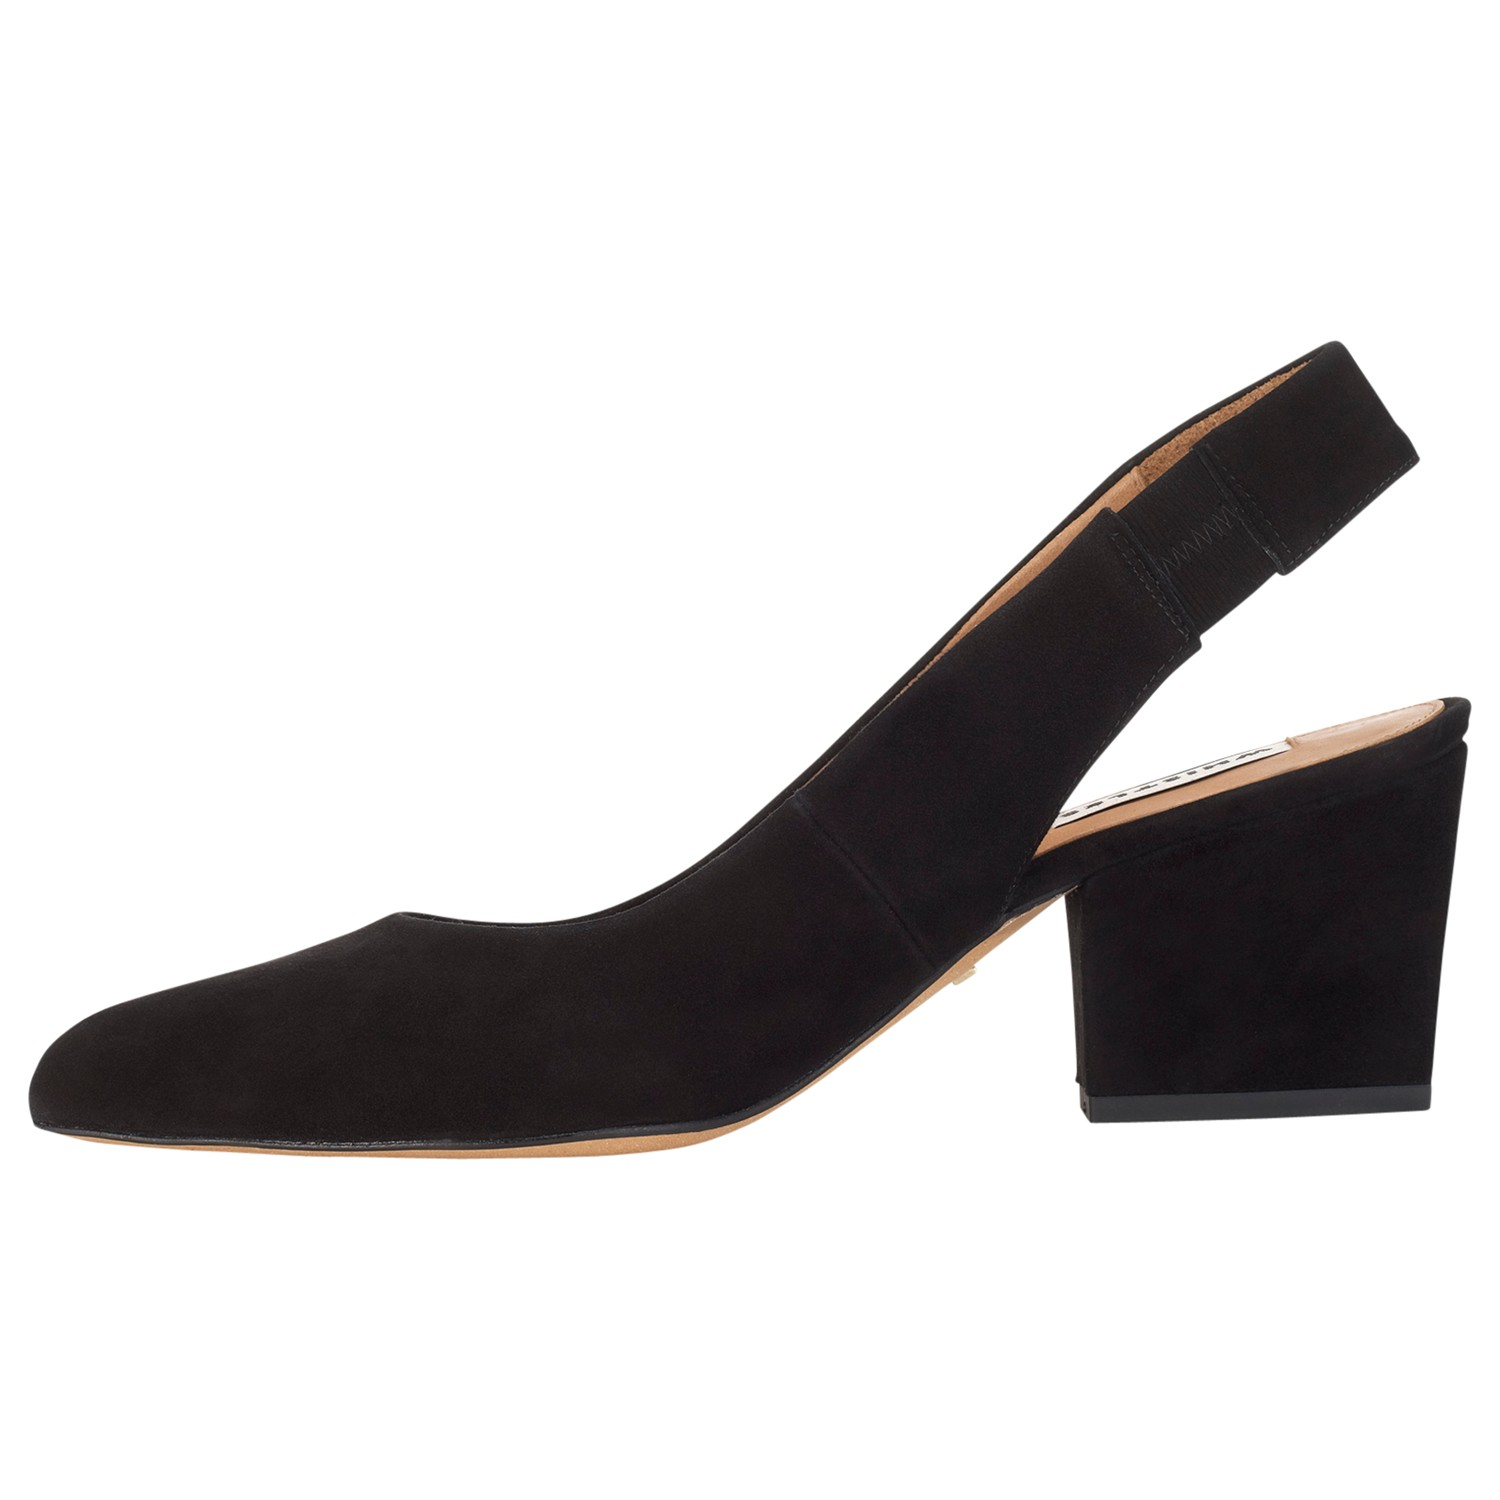 183c92cb5a Whistles Annie Block Heel Slingback Shoes in Black - Lyst